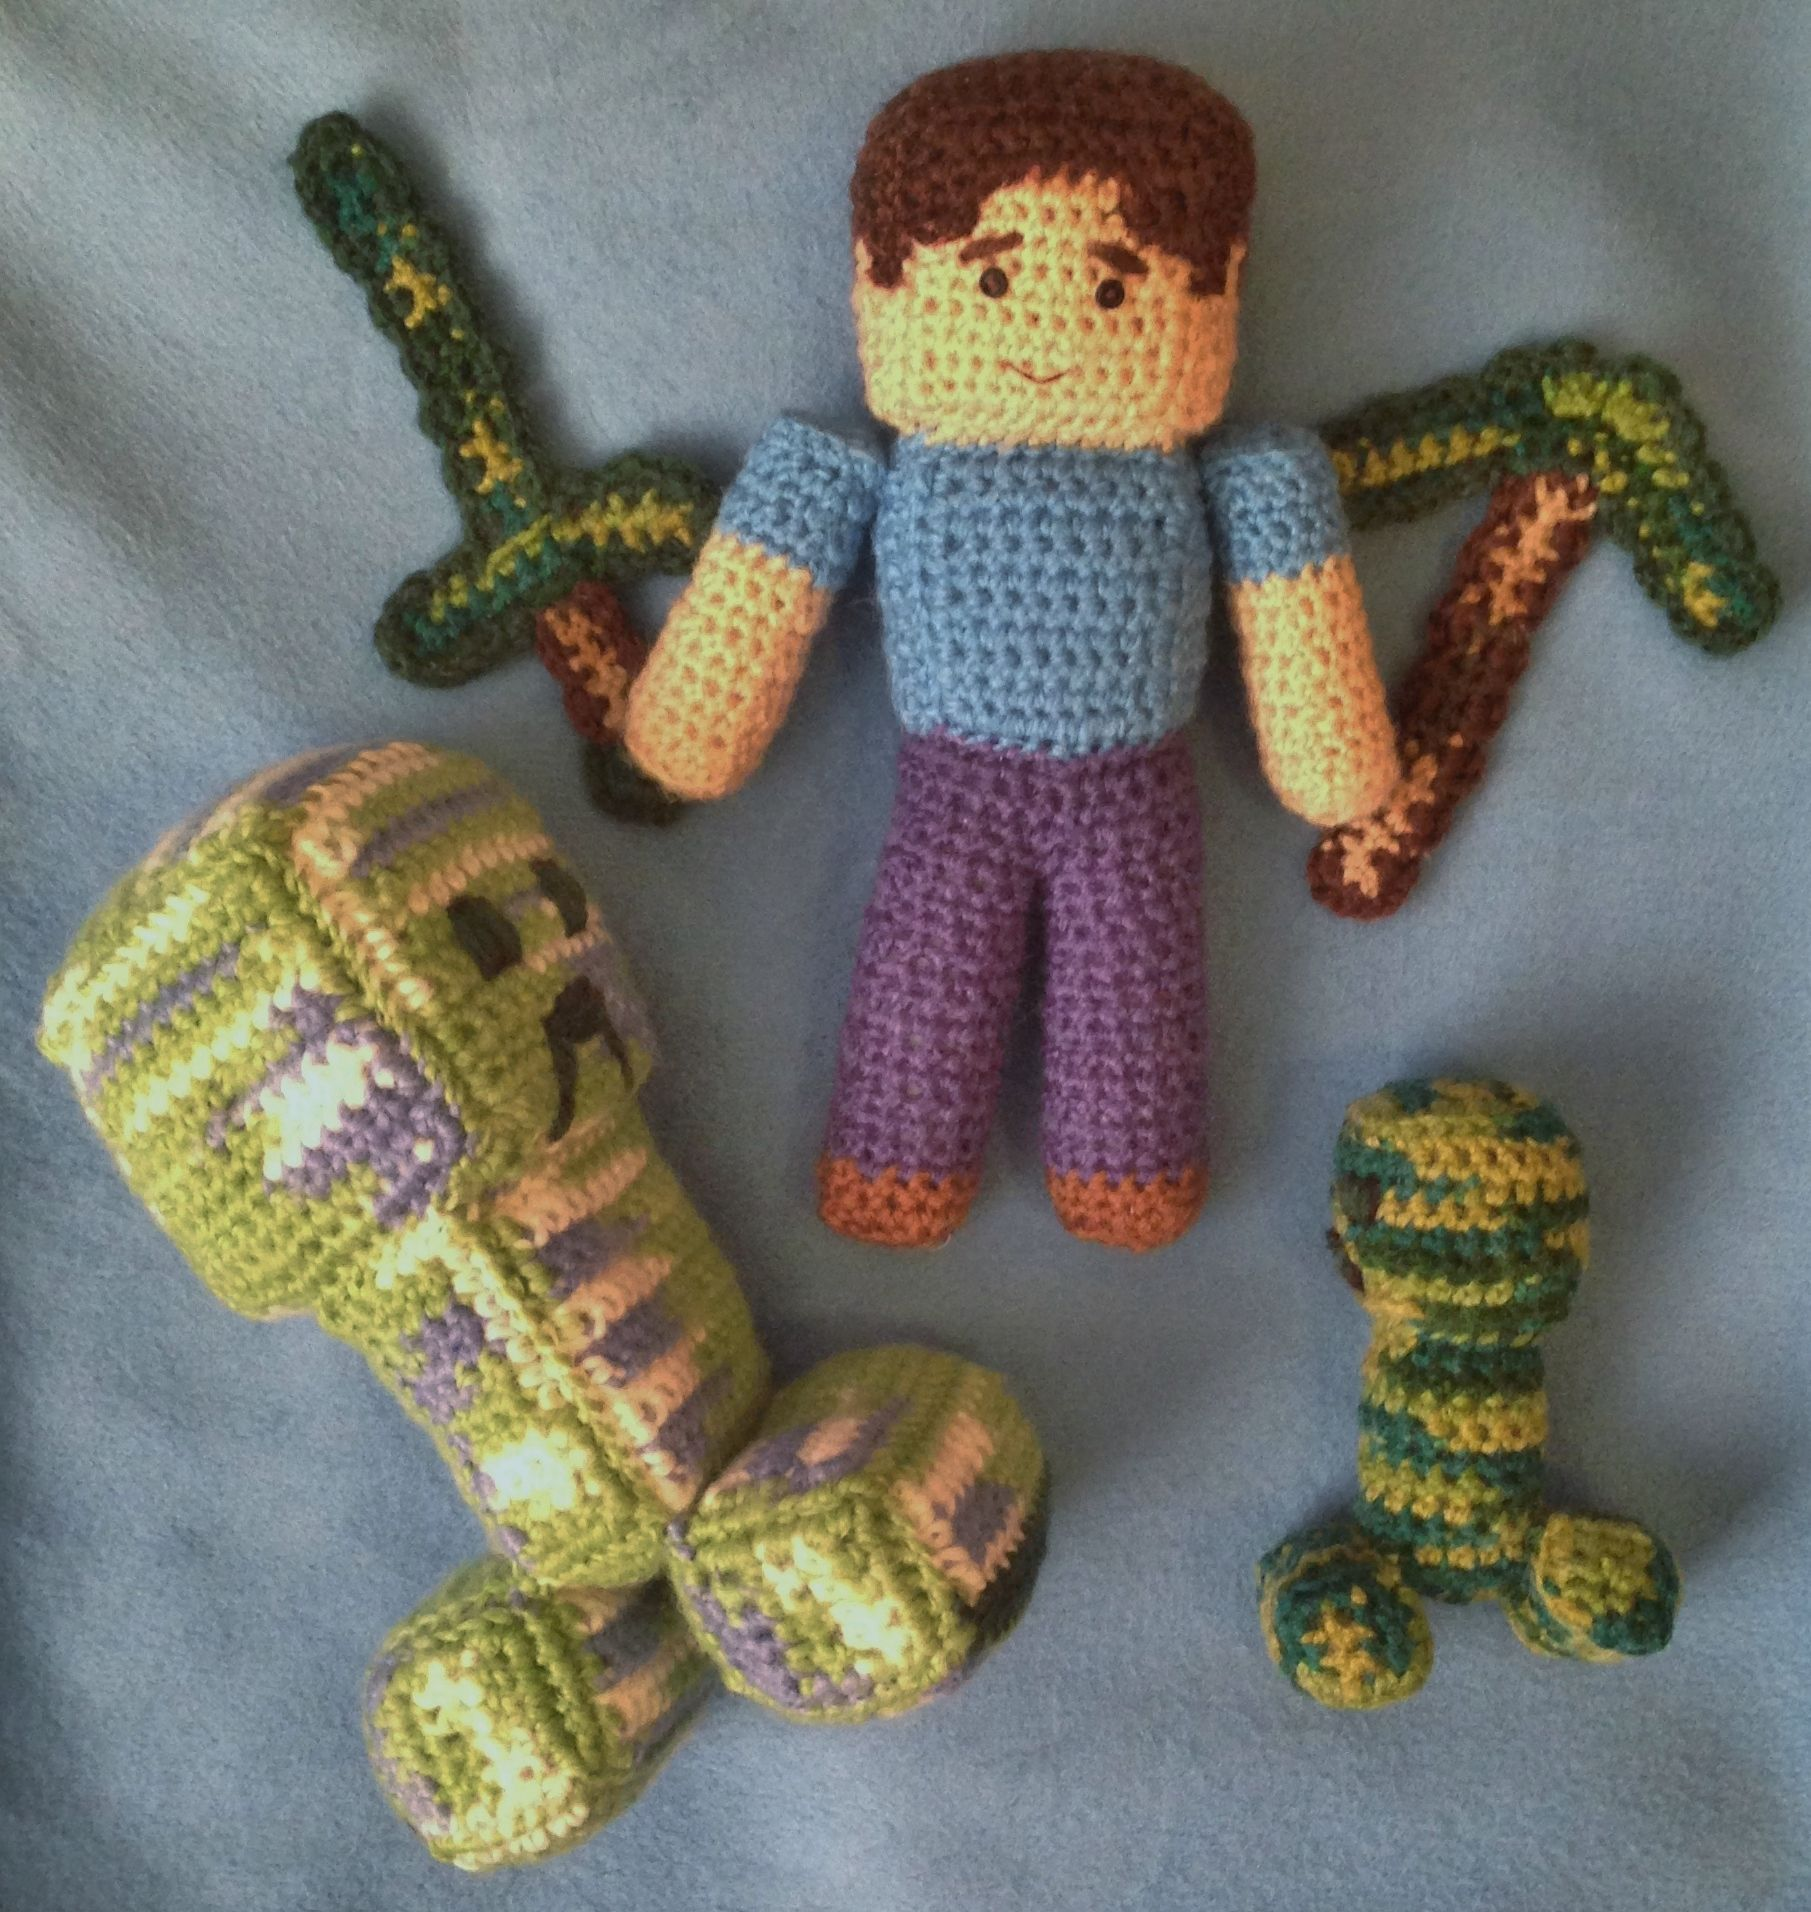 Minecraft amigurumi - Steve and some creepers | CROCHET | Pinterest ...